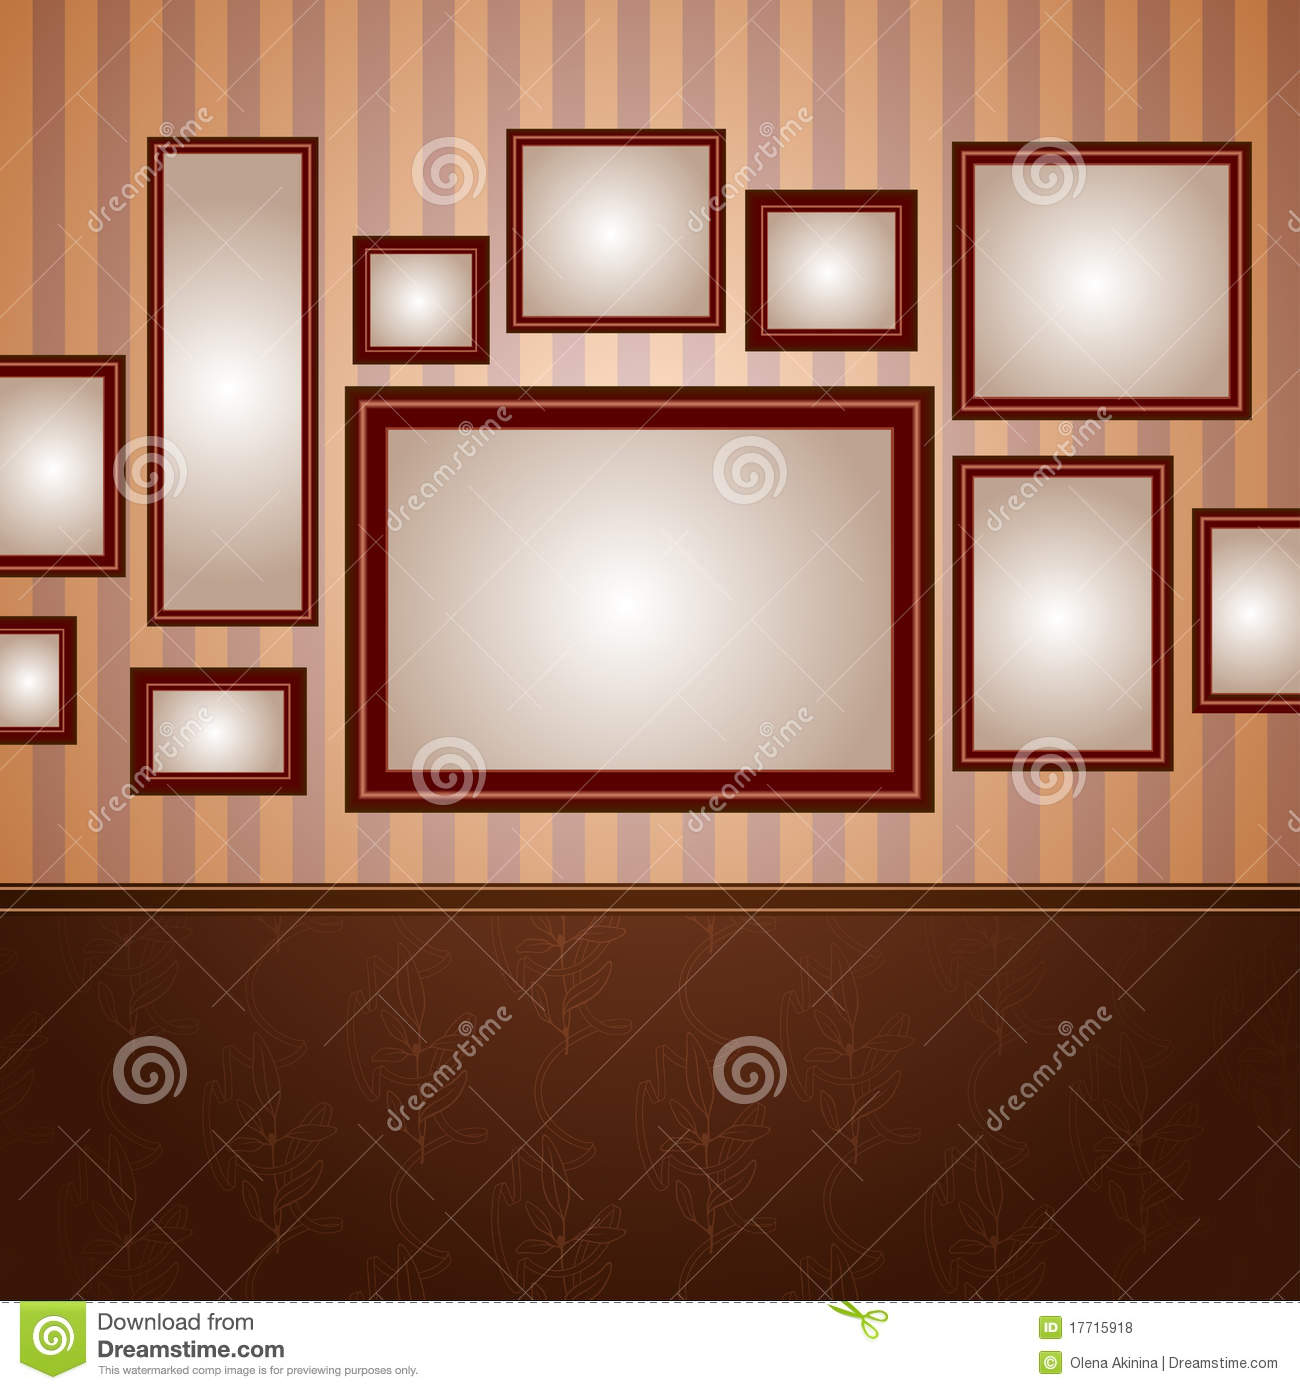 Wallpapers Frame Stock Illustrations – 20,20 Wallpapers Frame ...